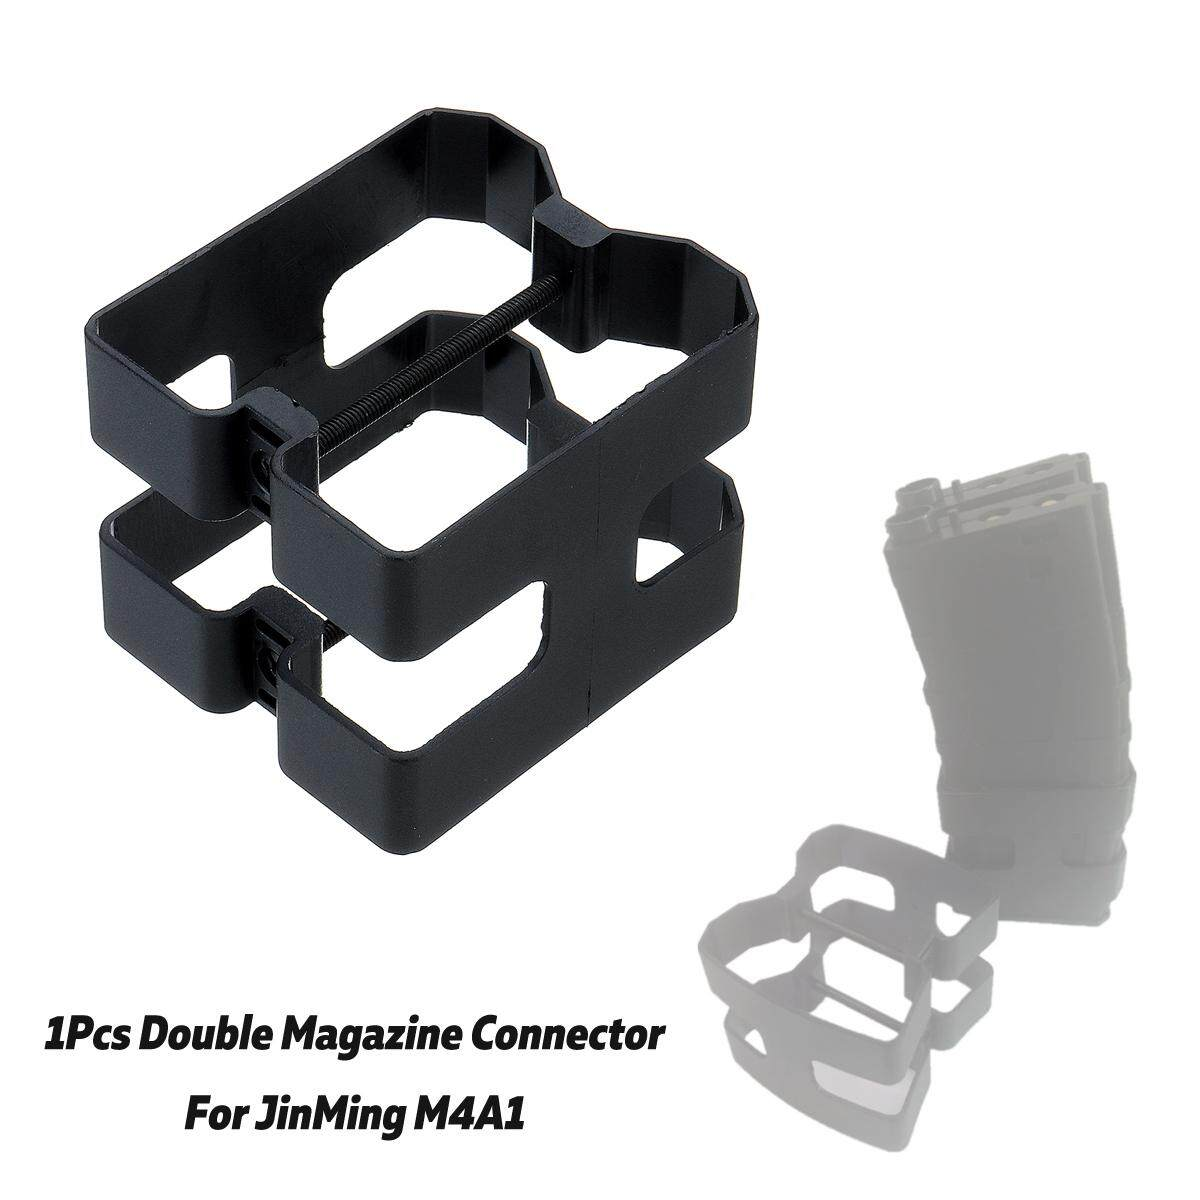 1Pcs Black Double Magazine Connector for JinMing Scar Gel Ball Toy